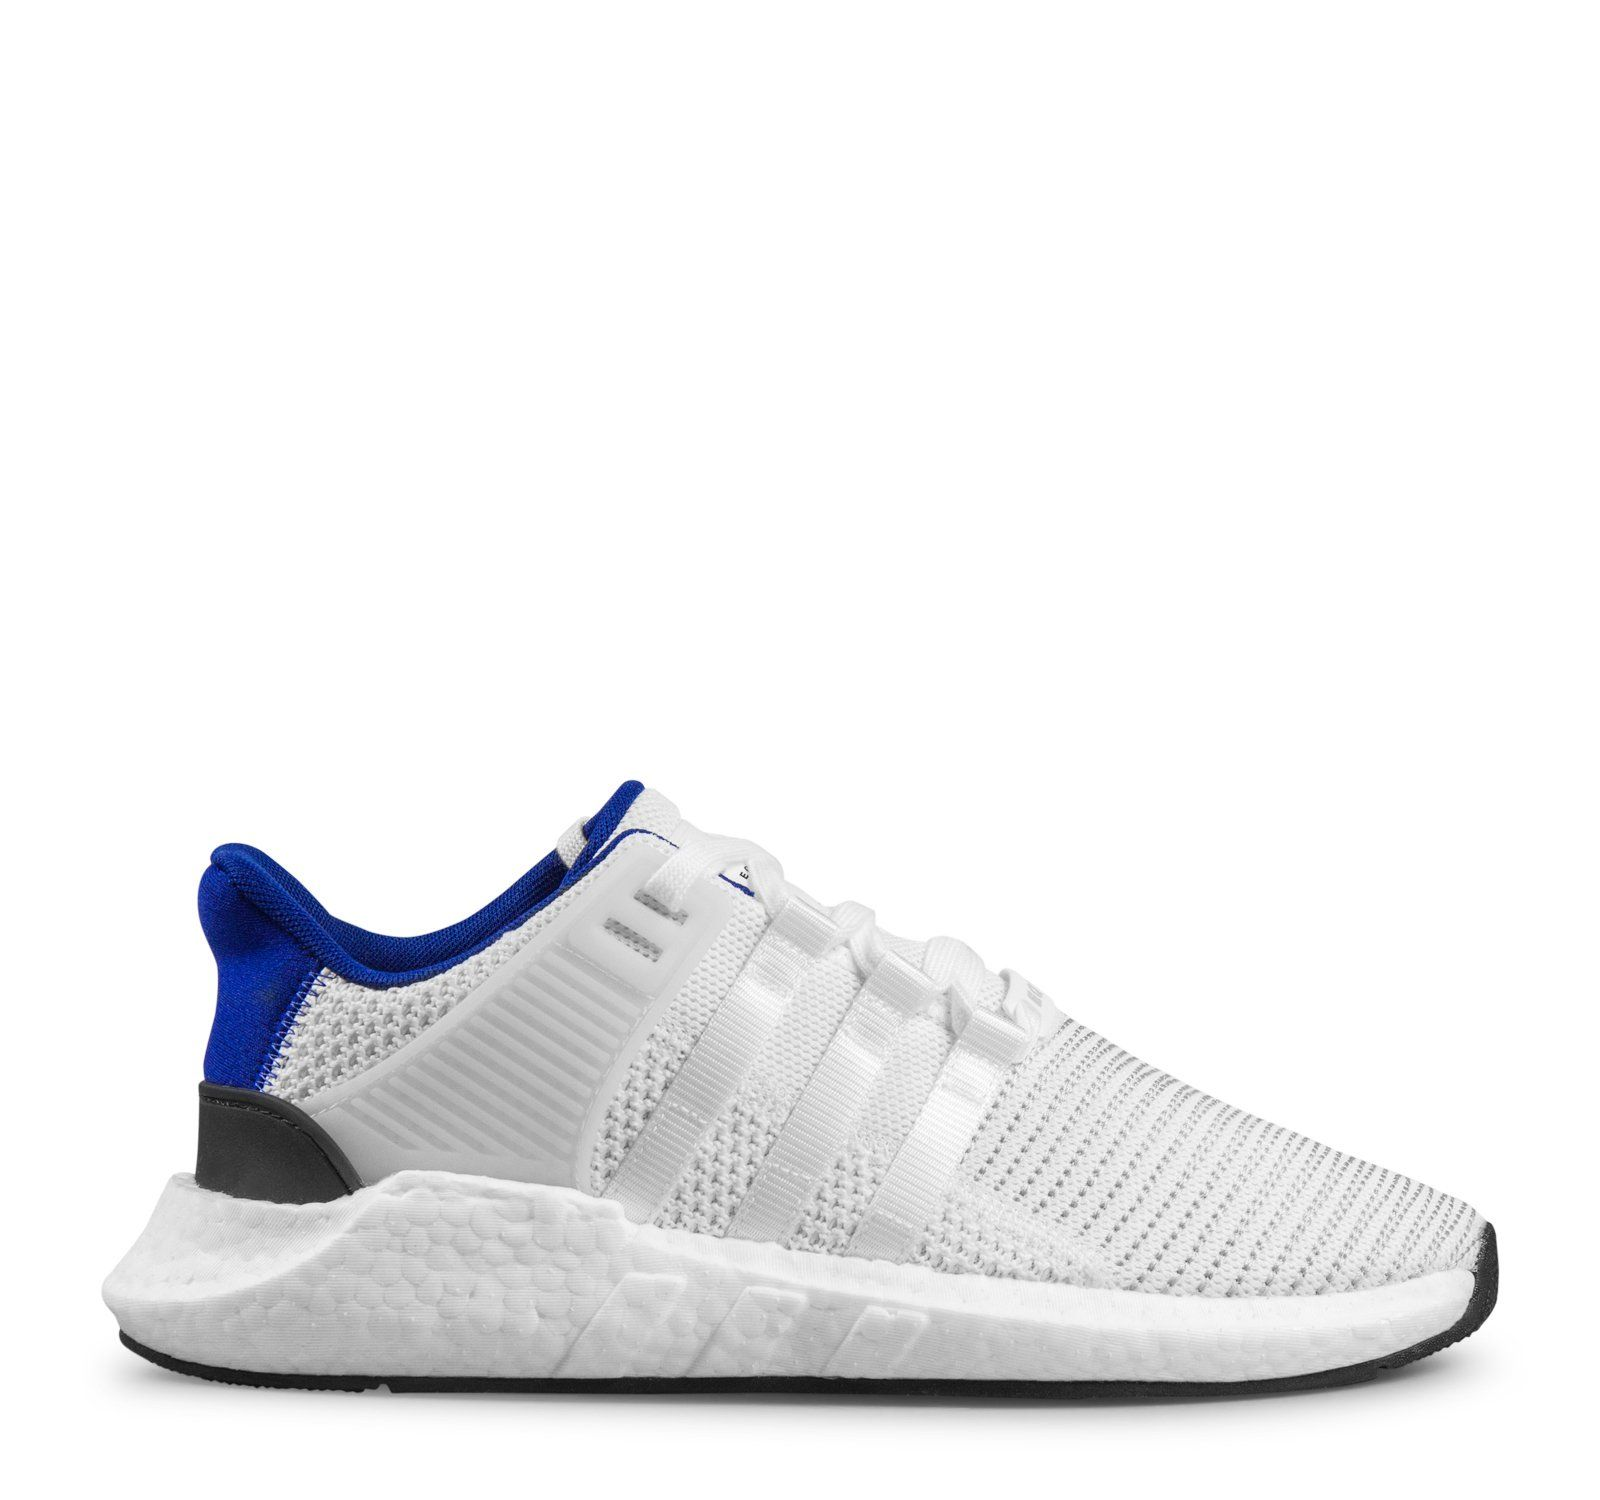 pretty nice ec09b 3776b Adidas EQT Support 93/17 BZ0592 Men's Sneaker in Blue and ...